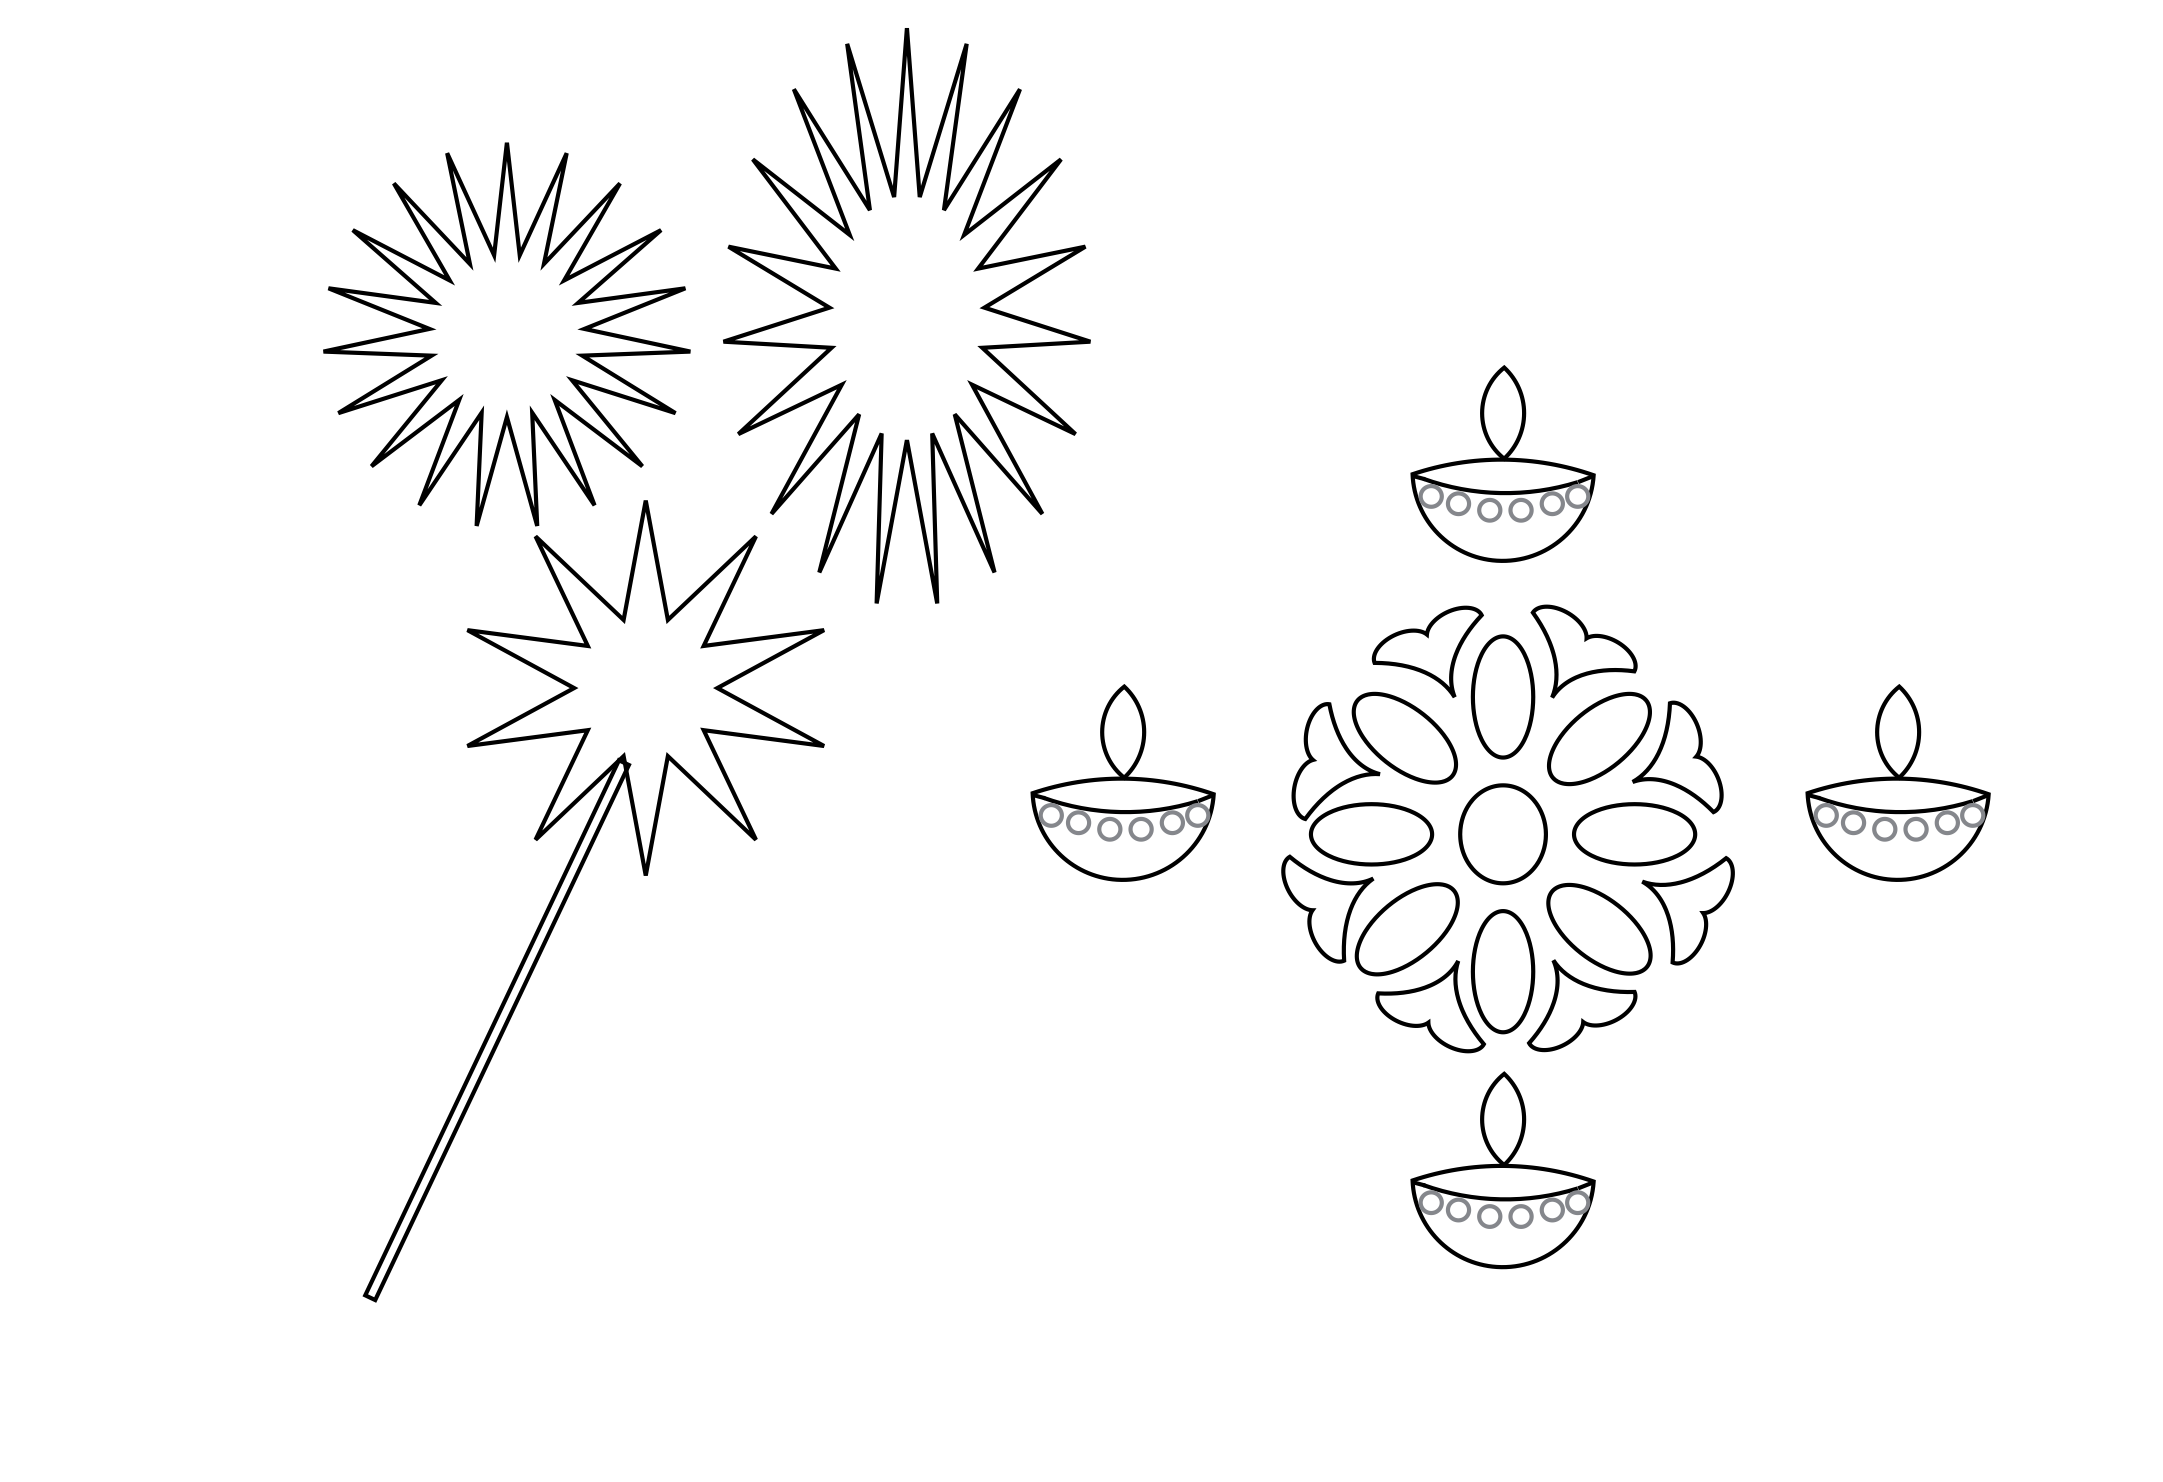 Diwali Coloring Pages Download | diwali coloring pages | Pinterest ...